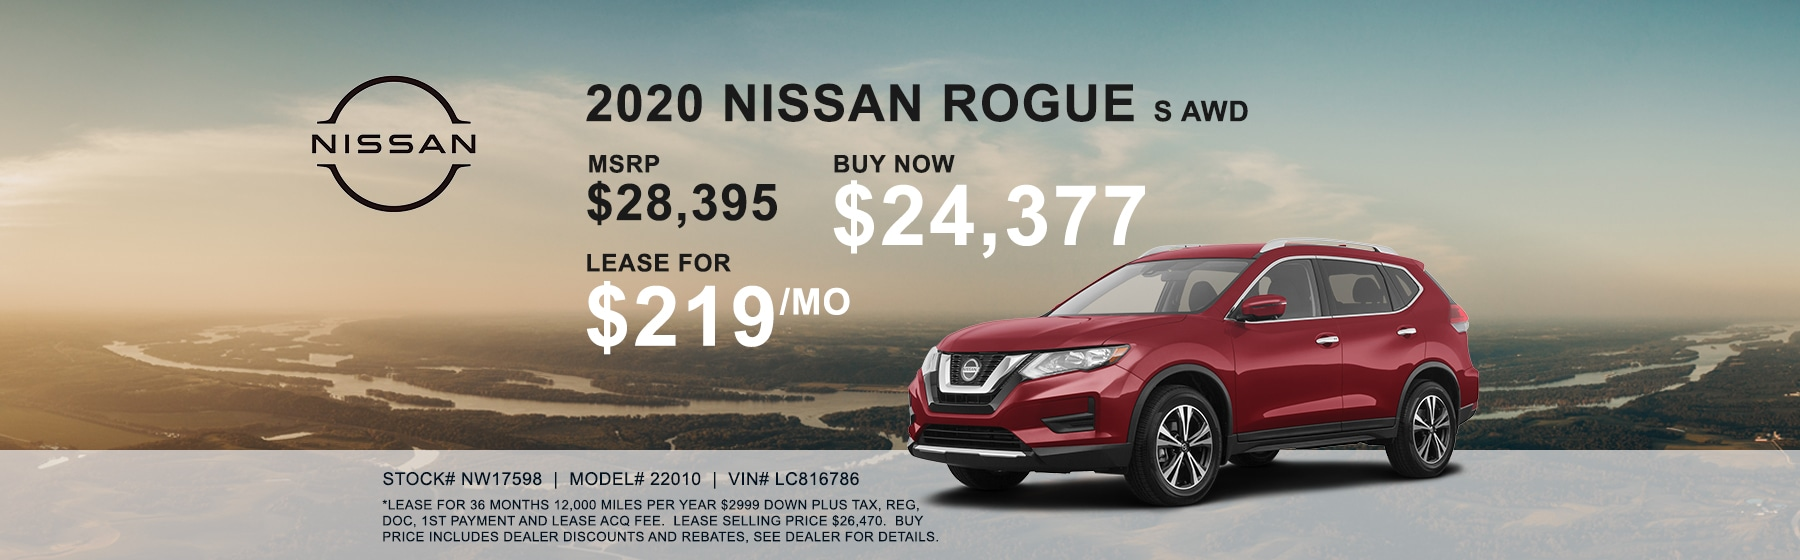 2020 Nissan Rogue S Lease for $219 per month